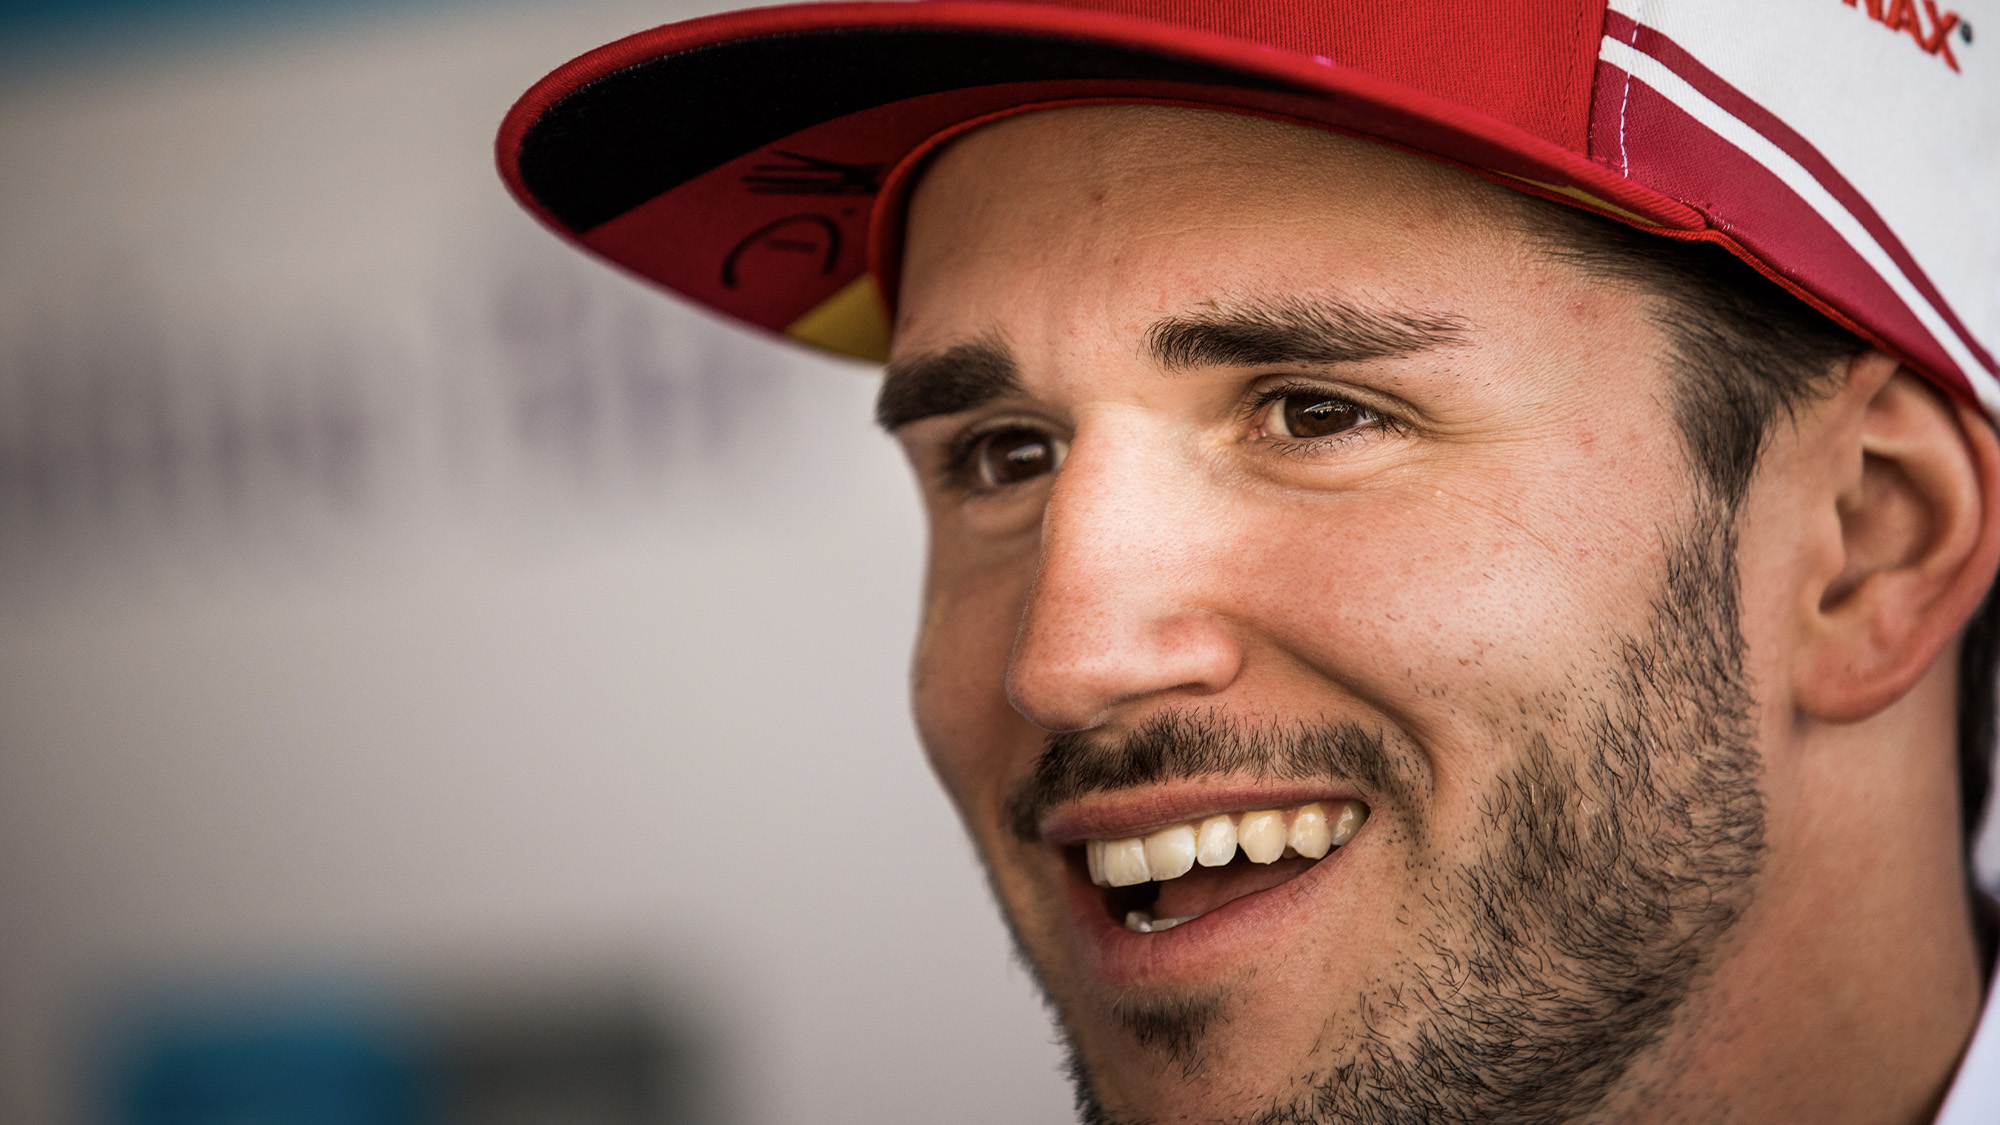 Daniel Abt returns to Formula E after esports scandal